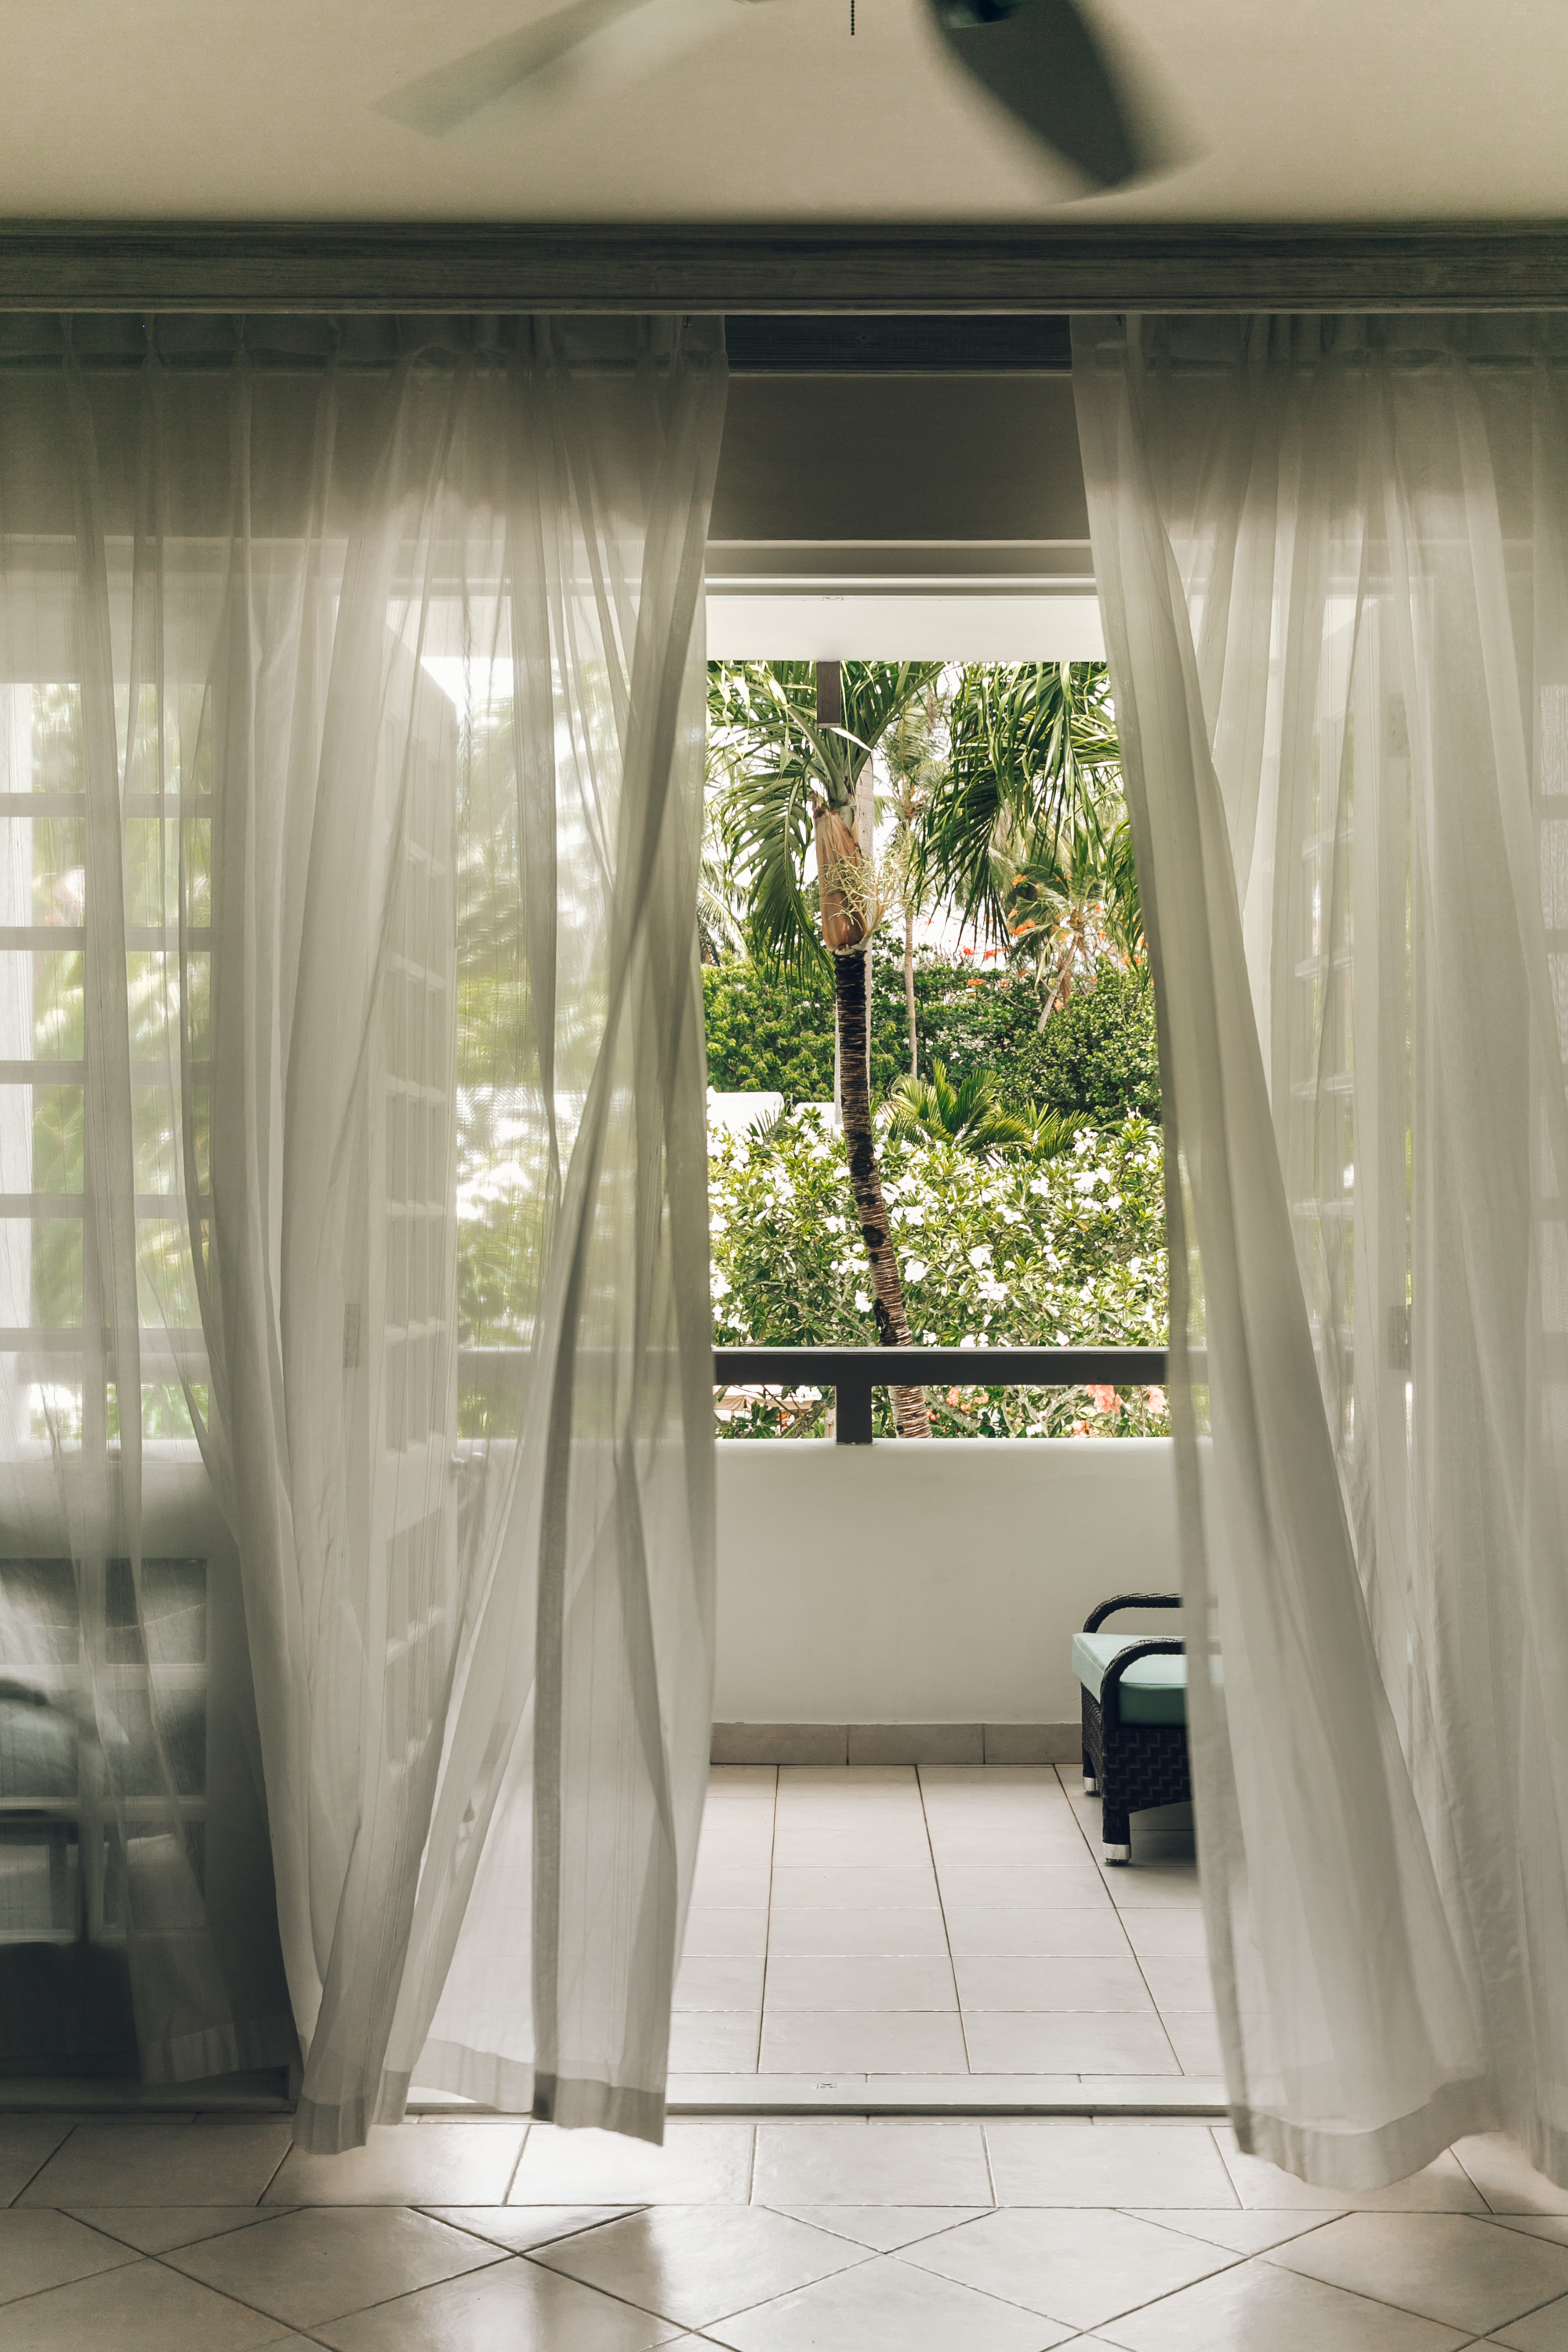 Tropical views from our room at Colony Club by Elegant Hotels in Barbados.